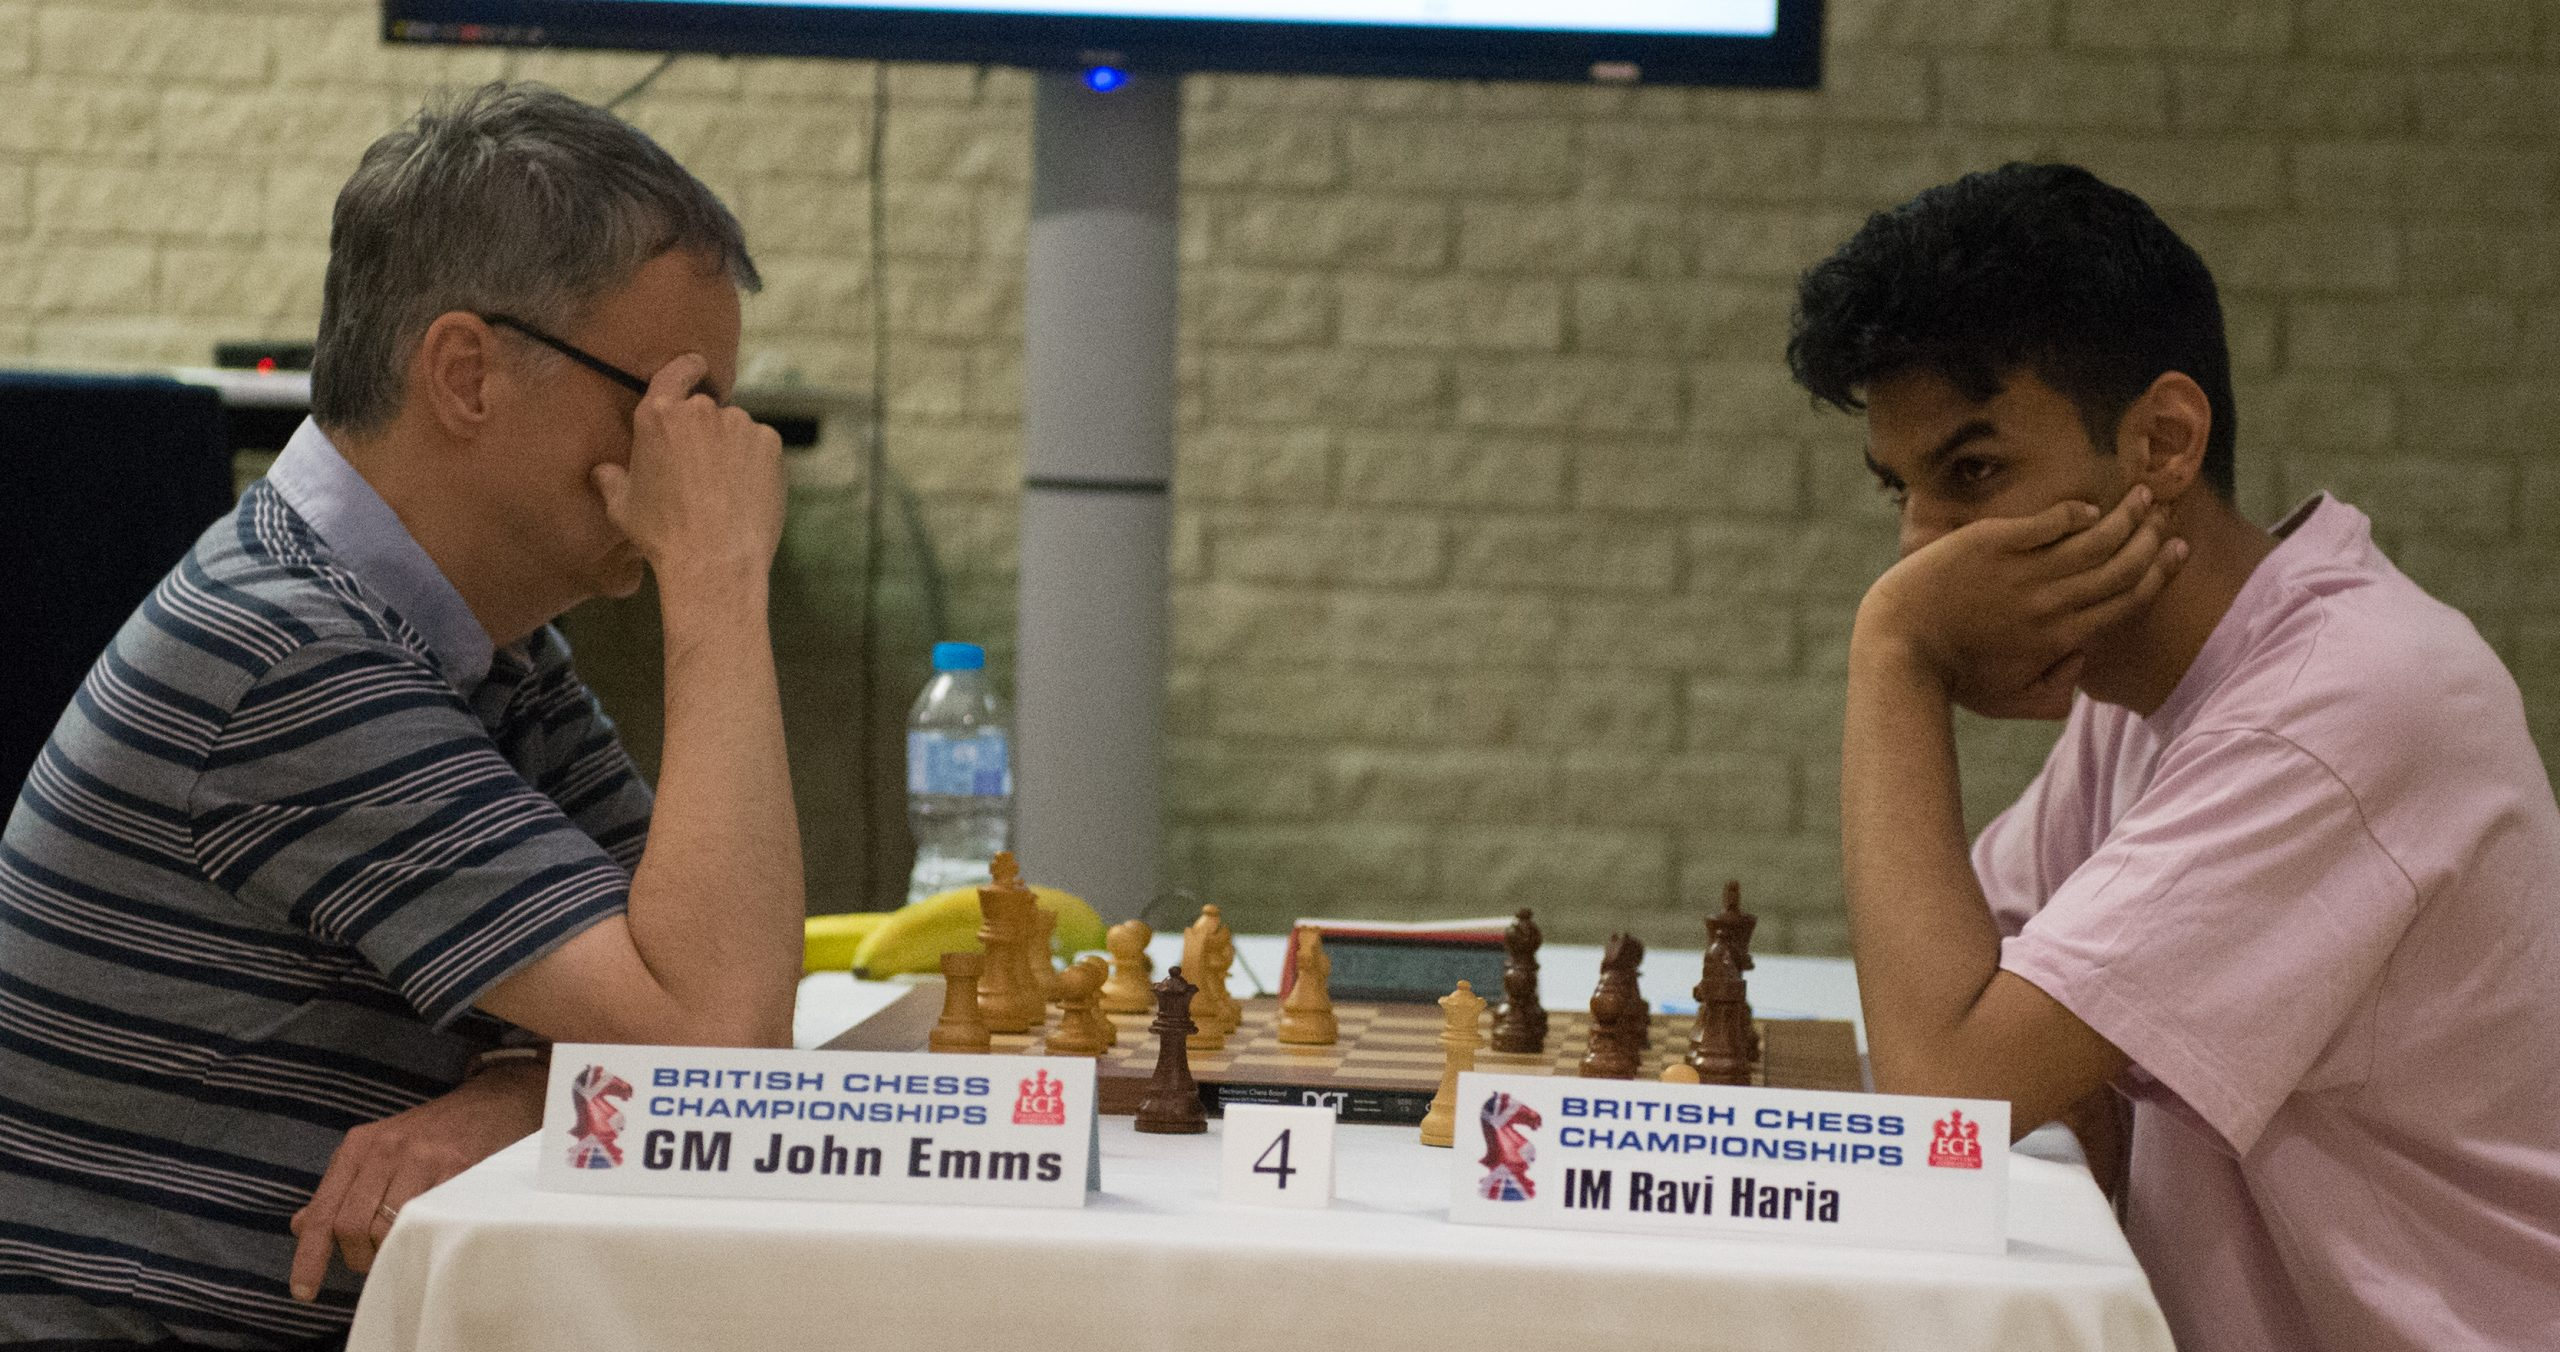 GM John Emms plays IM Ravi Haria in the final round of the 2019 British Championships in Torquay